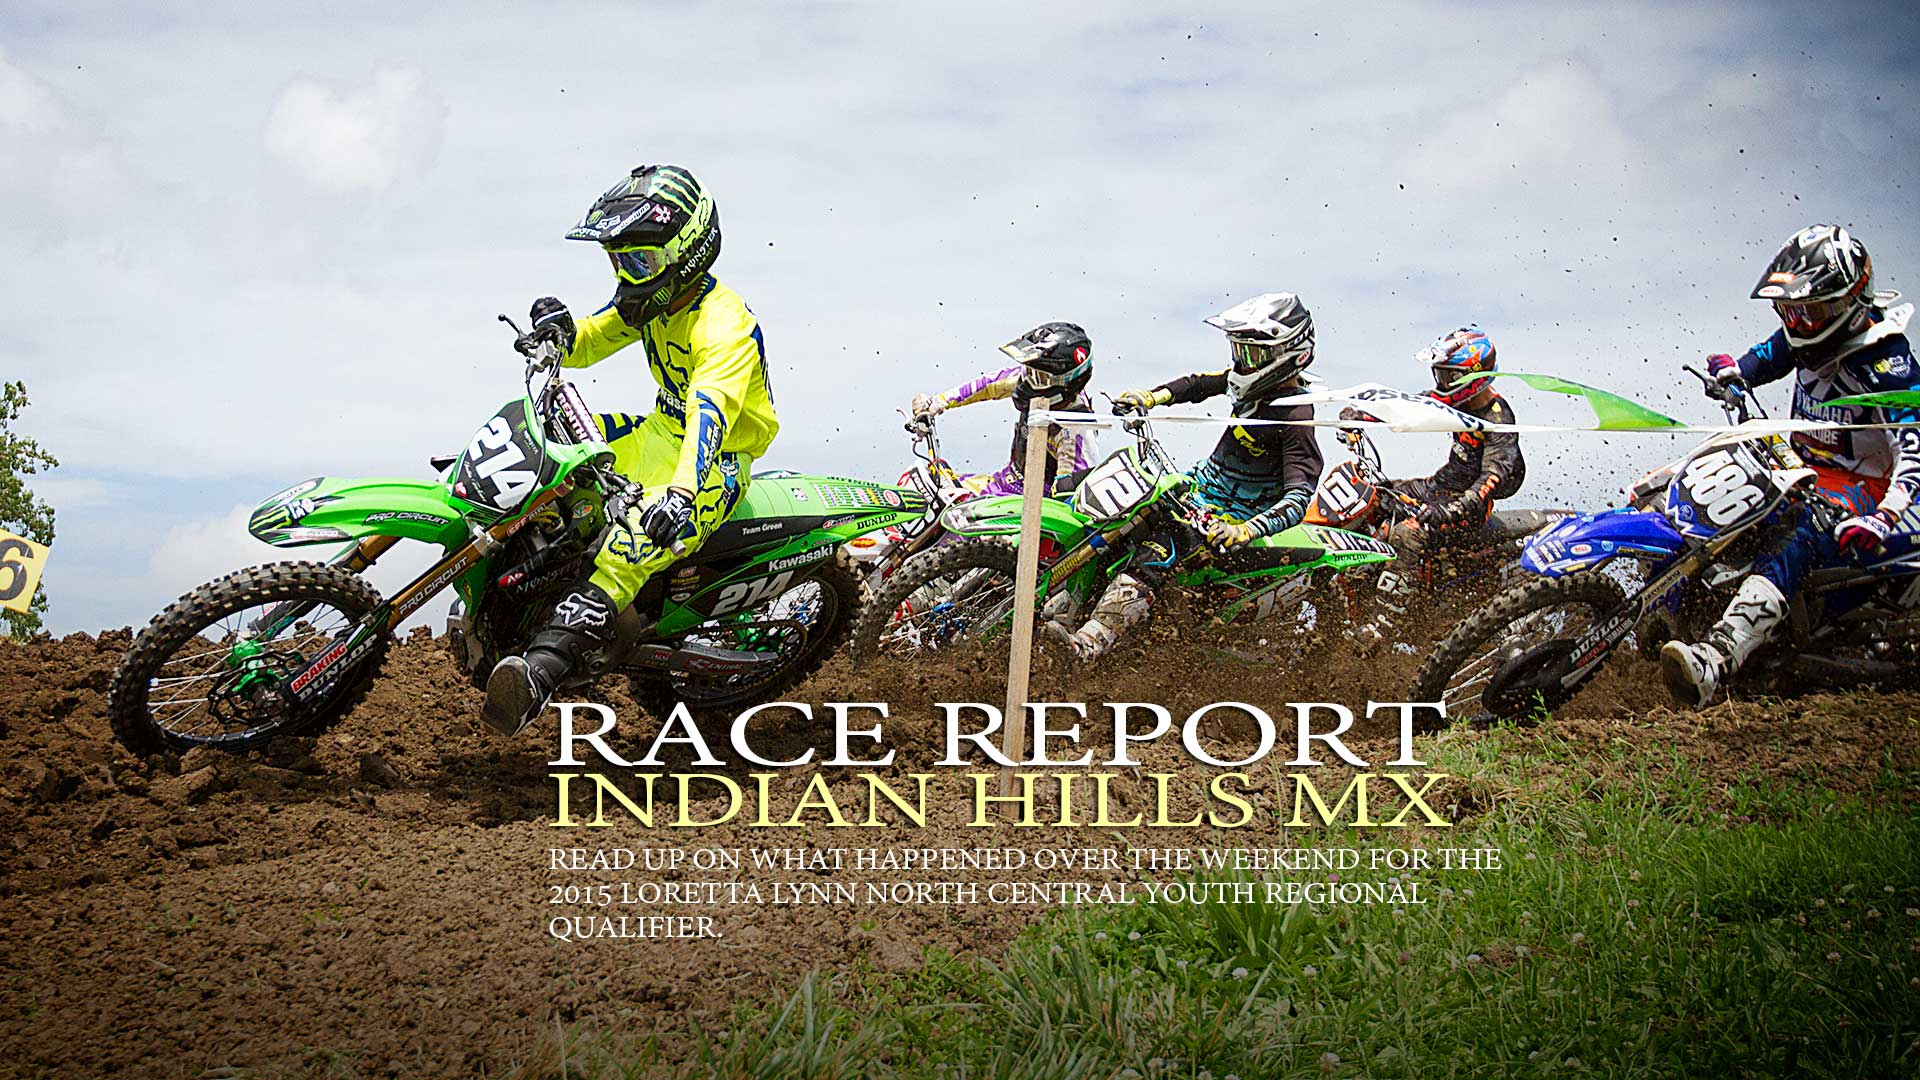 RACE REPORT: LL NC Youth Regional - Indian Hills MX